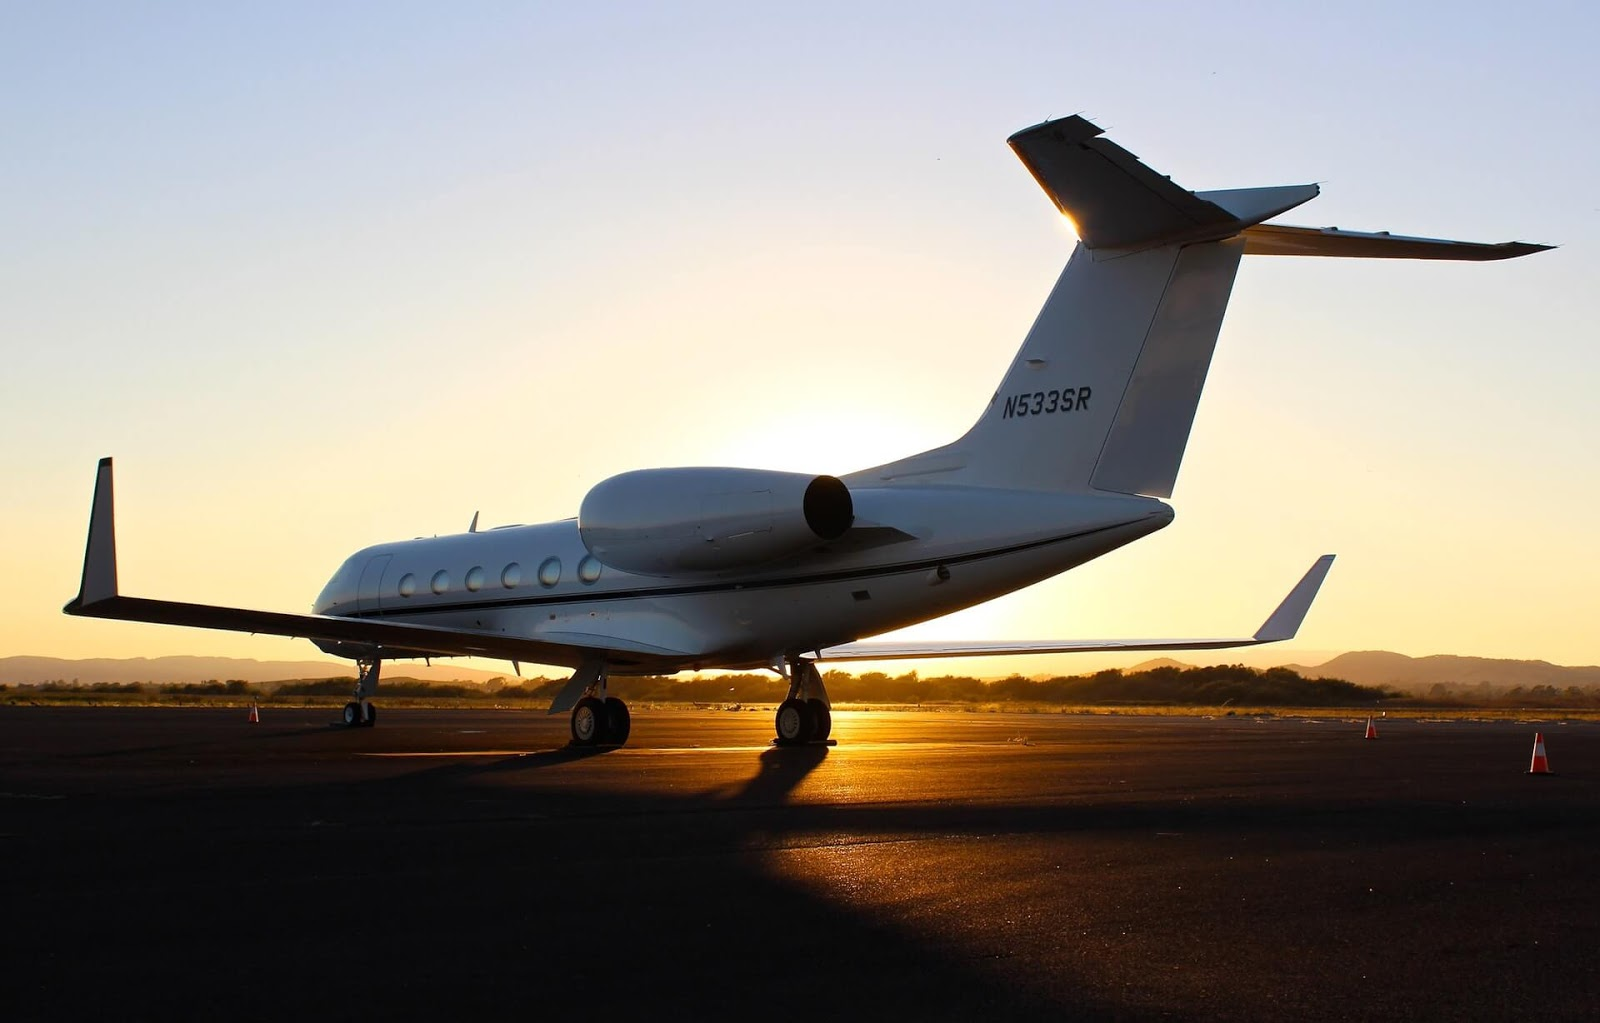 Need to Hire a Private Jet? Here's What You Need to Know